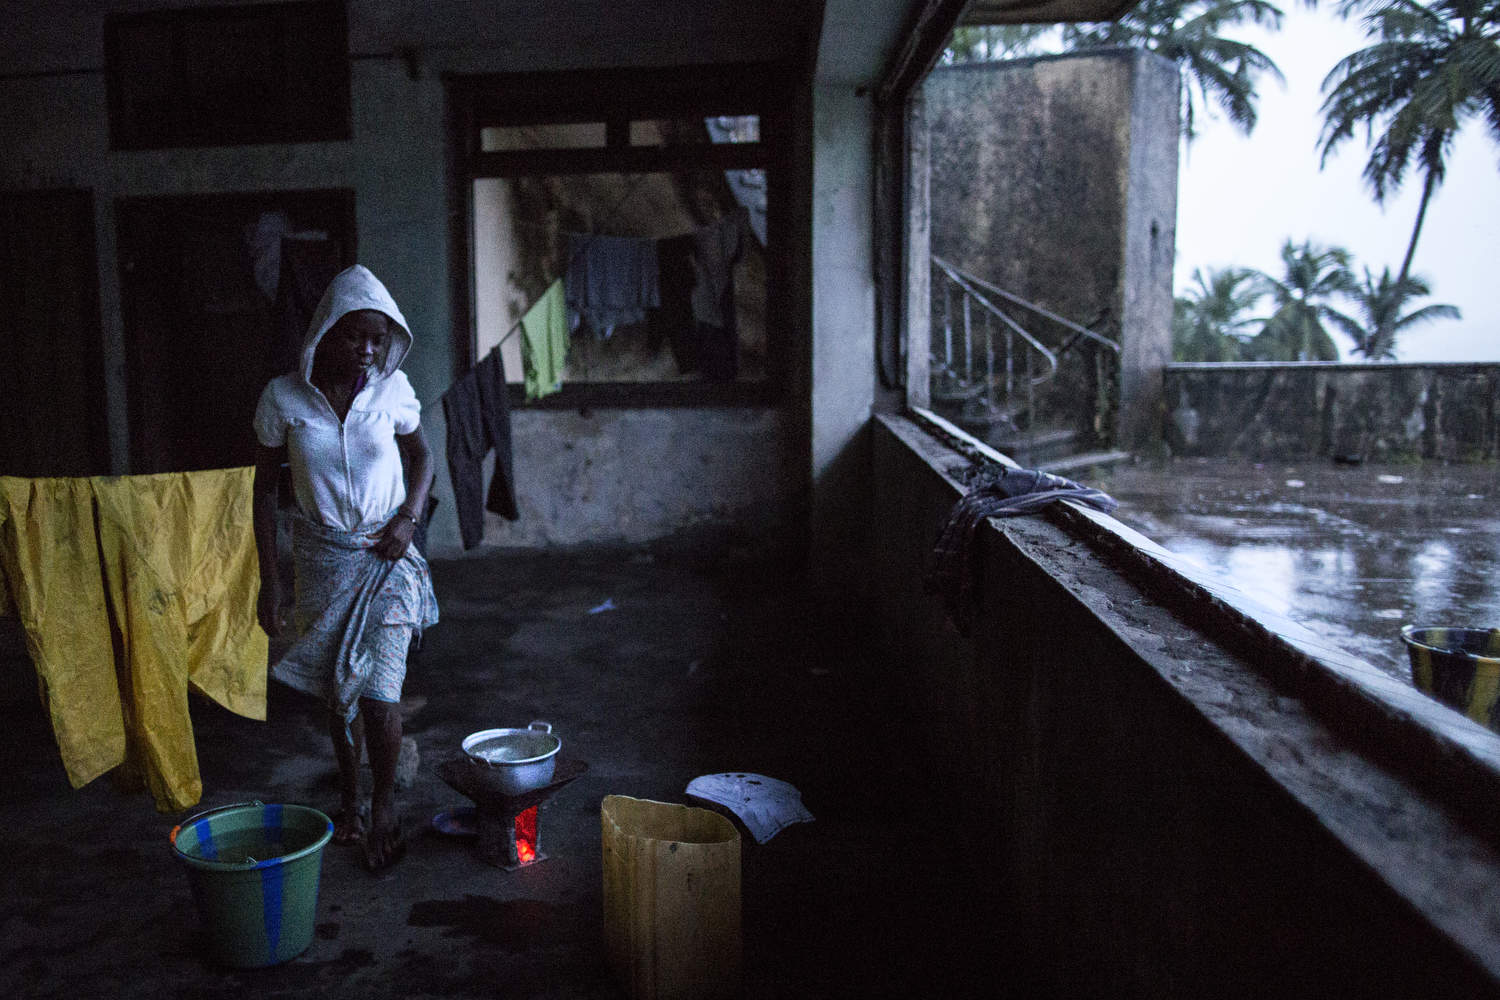 Patience Wallace, 14, heats water for a bath on a cold and rainy day. Former President Tubman's house in Harper, once referred to as the Tubman Palace, is now derelict and filled with squatters.  Photo by @glennagordon for @smithsonianmag#Liberia #Africa #WestAfrica #EverydayAfrica #antebellum #architecture #Harper #remote #seaside #decay #mansion #Tumbans